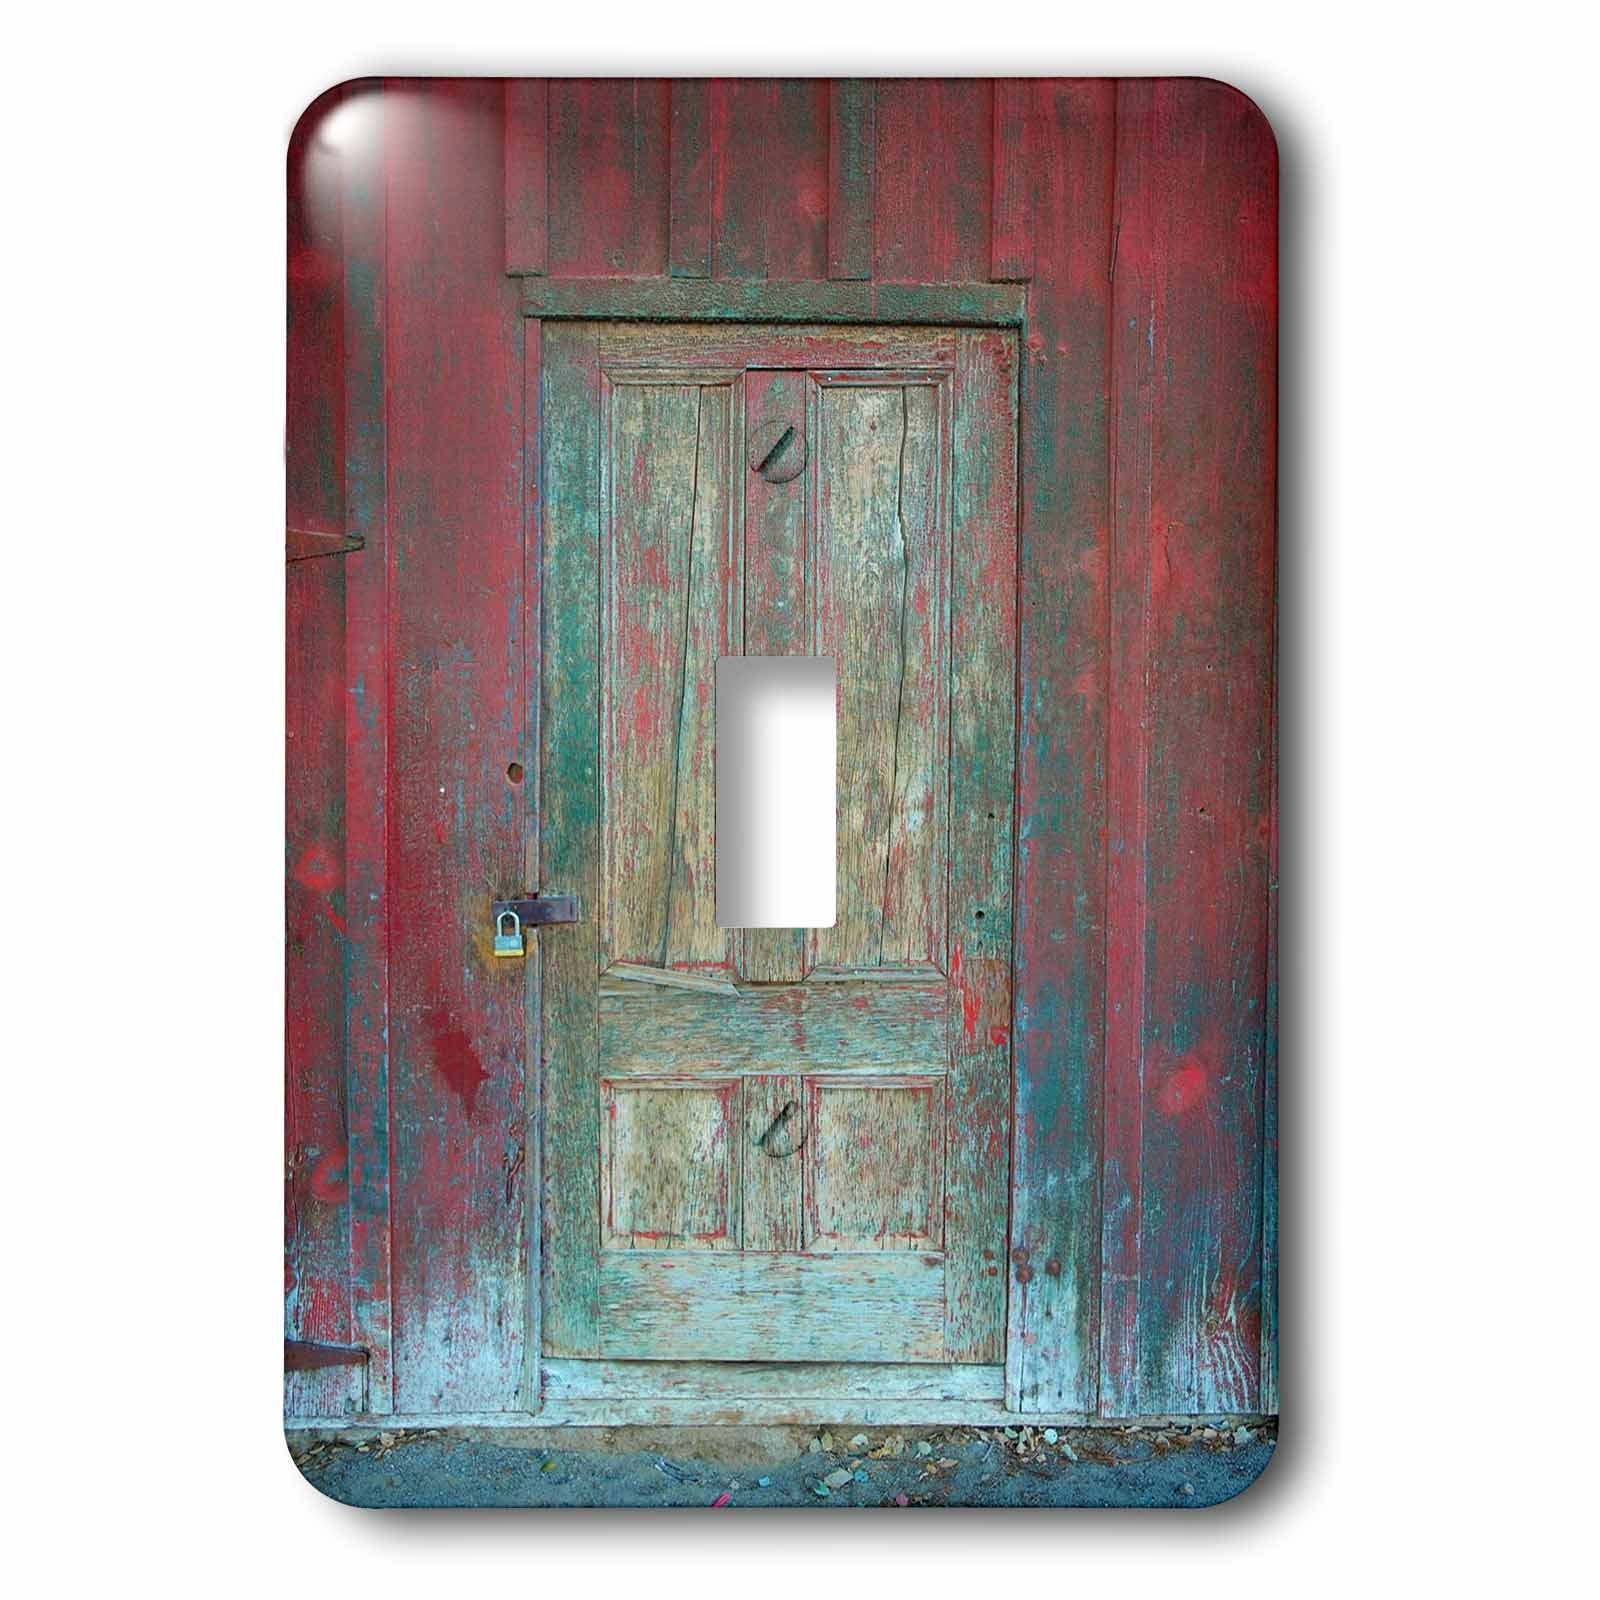 3dRose LSP_264386_1 Image of Aged Rustic Red Wooden Door Toggle Switch, Mixed